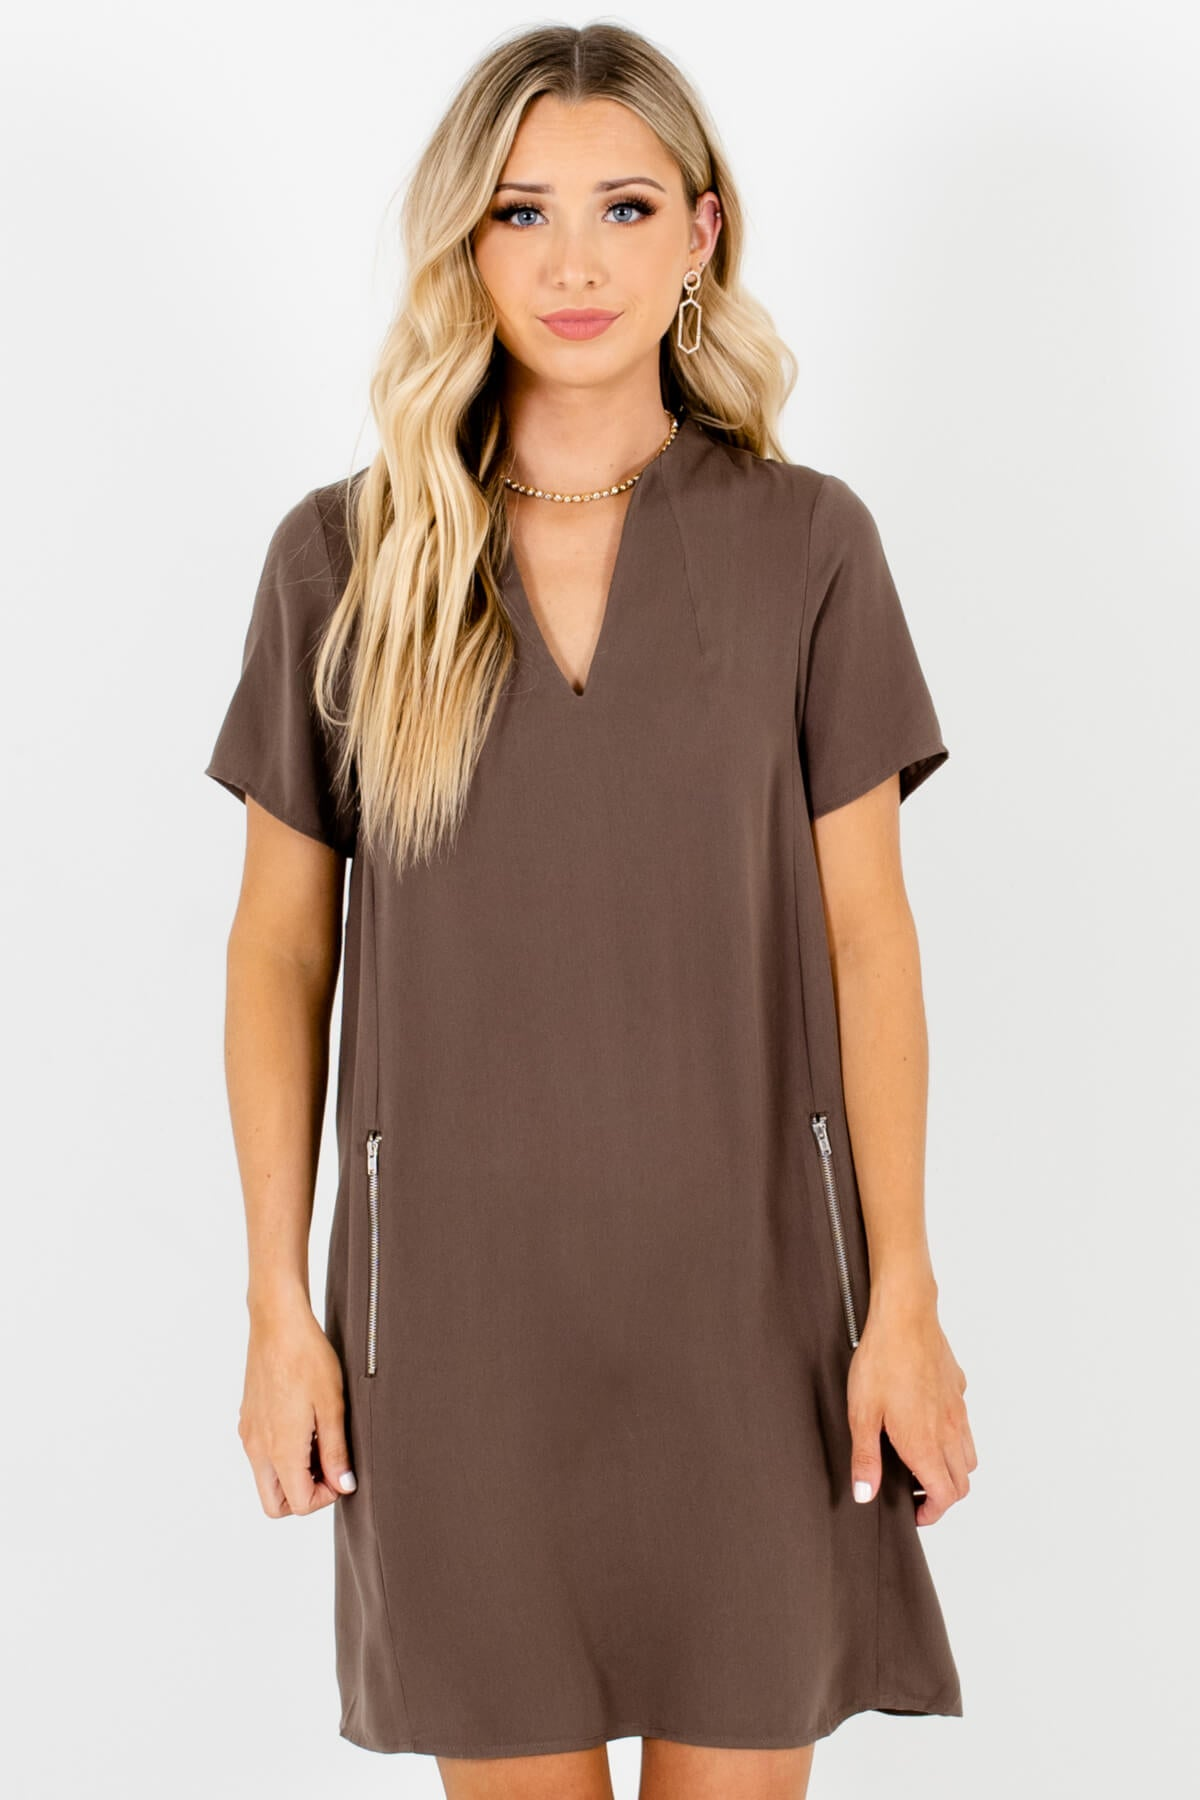 Olive Brown Zipper Mini Dresses Affordable Online Boutique Officewear